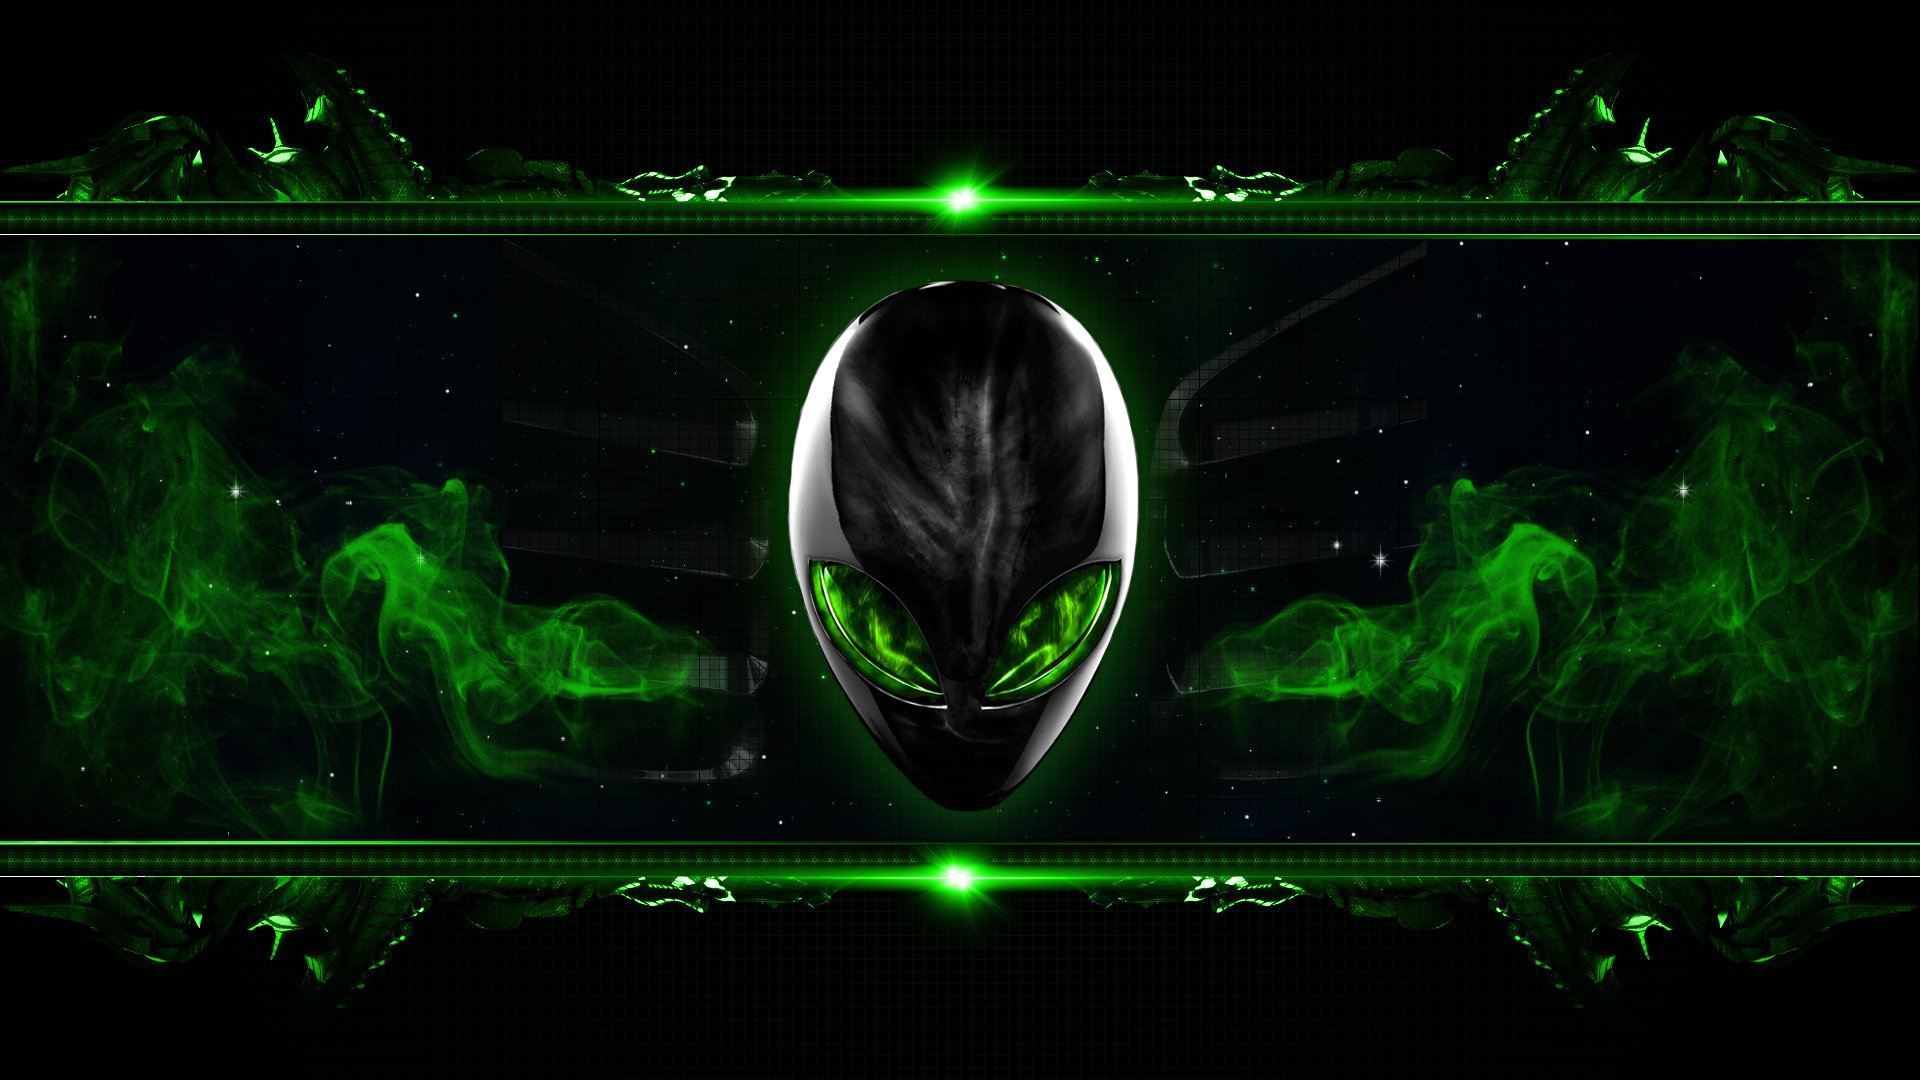 Alienware wallpapers for windows 7 wallpapersafari -  Alienware Wallpapers Dell Us